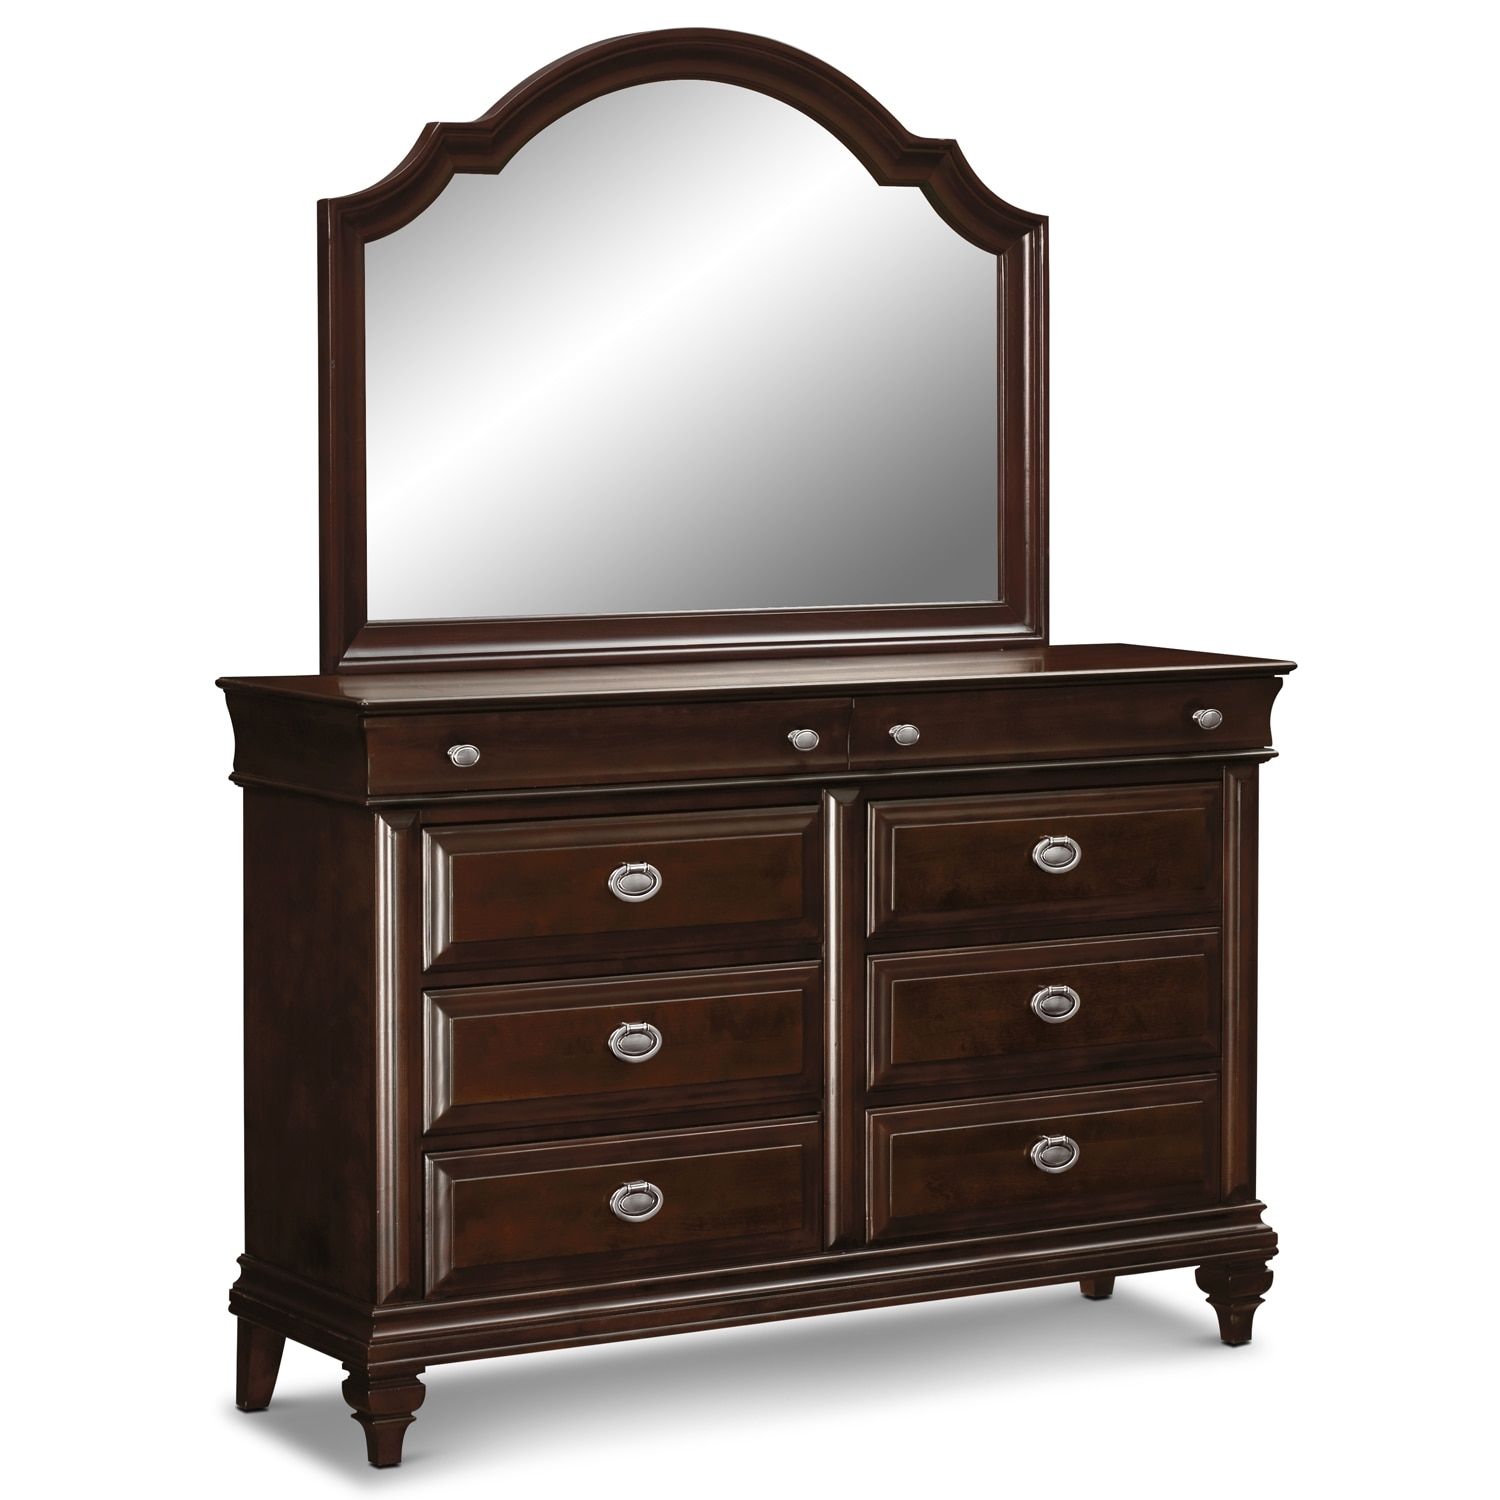 Bedroom Furniture - Manhattan Dresser and Mirror - Cherry